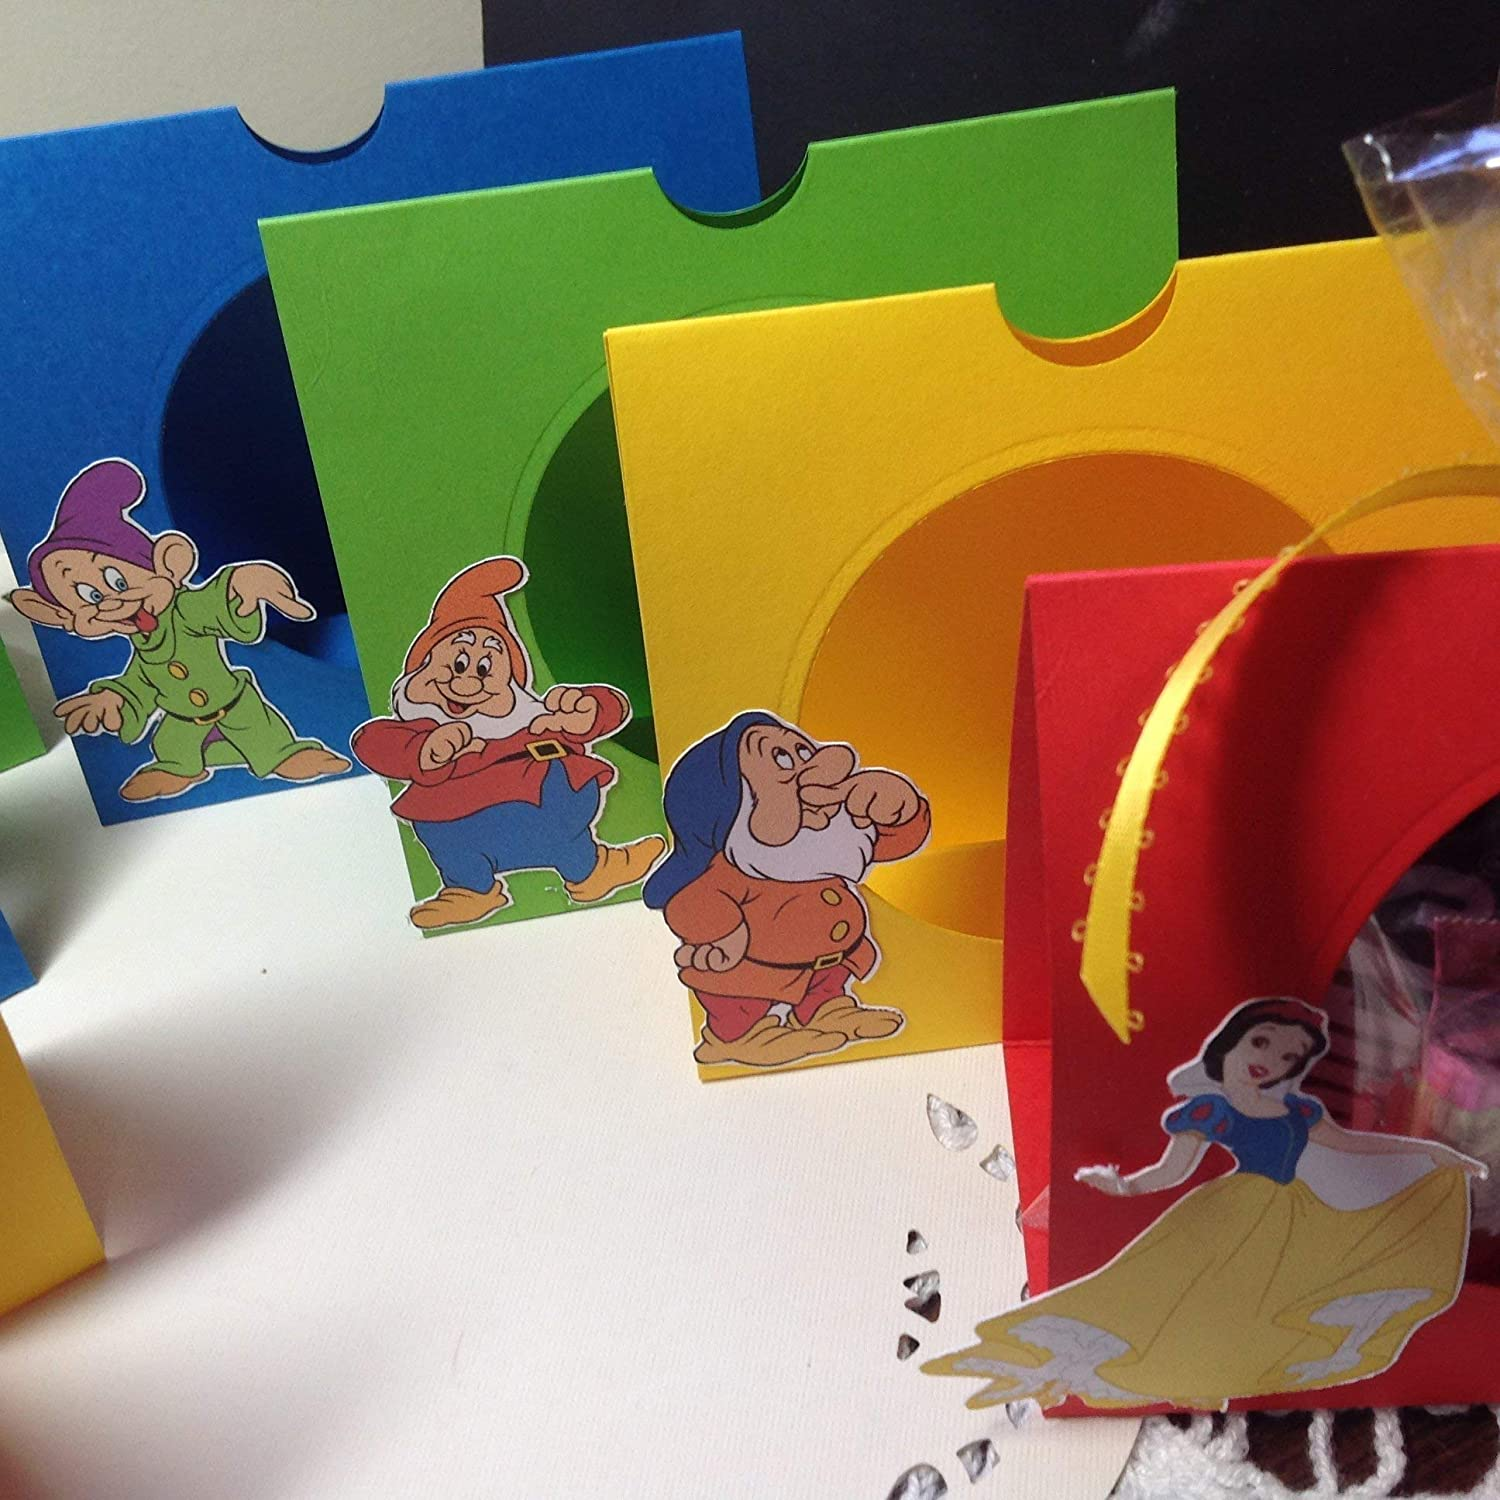 8 Dwarfs and Snow White Treat Bag Candy Party Favors includes ribbon and clear bags